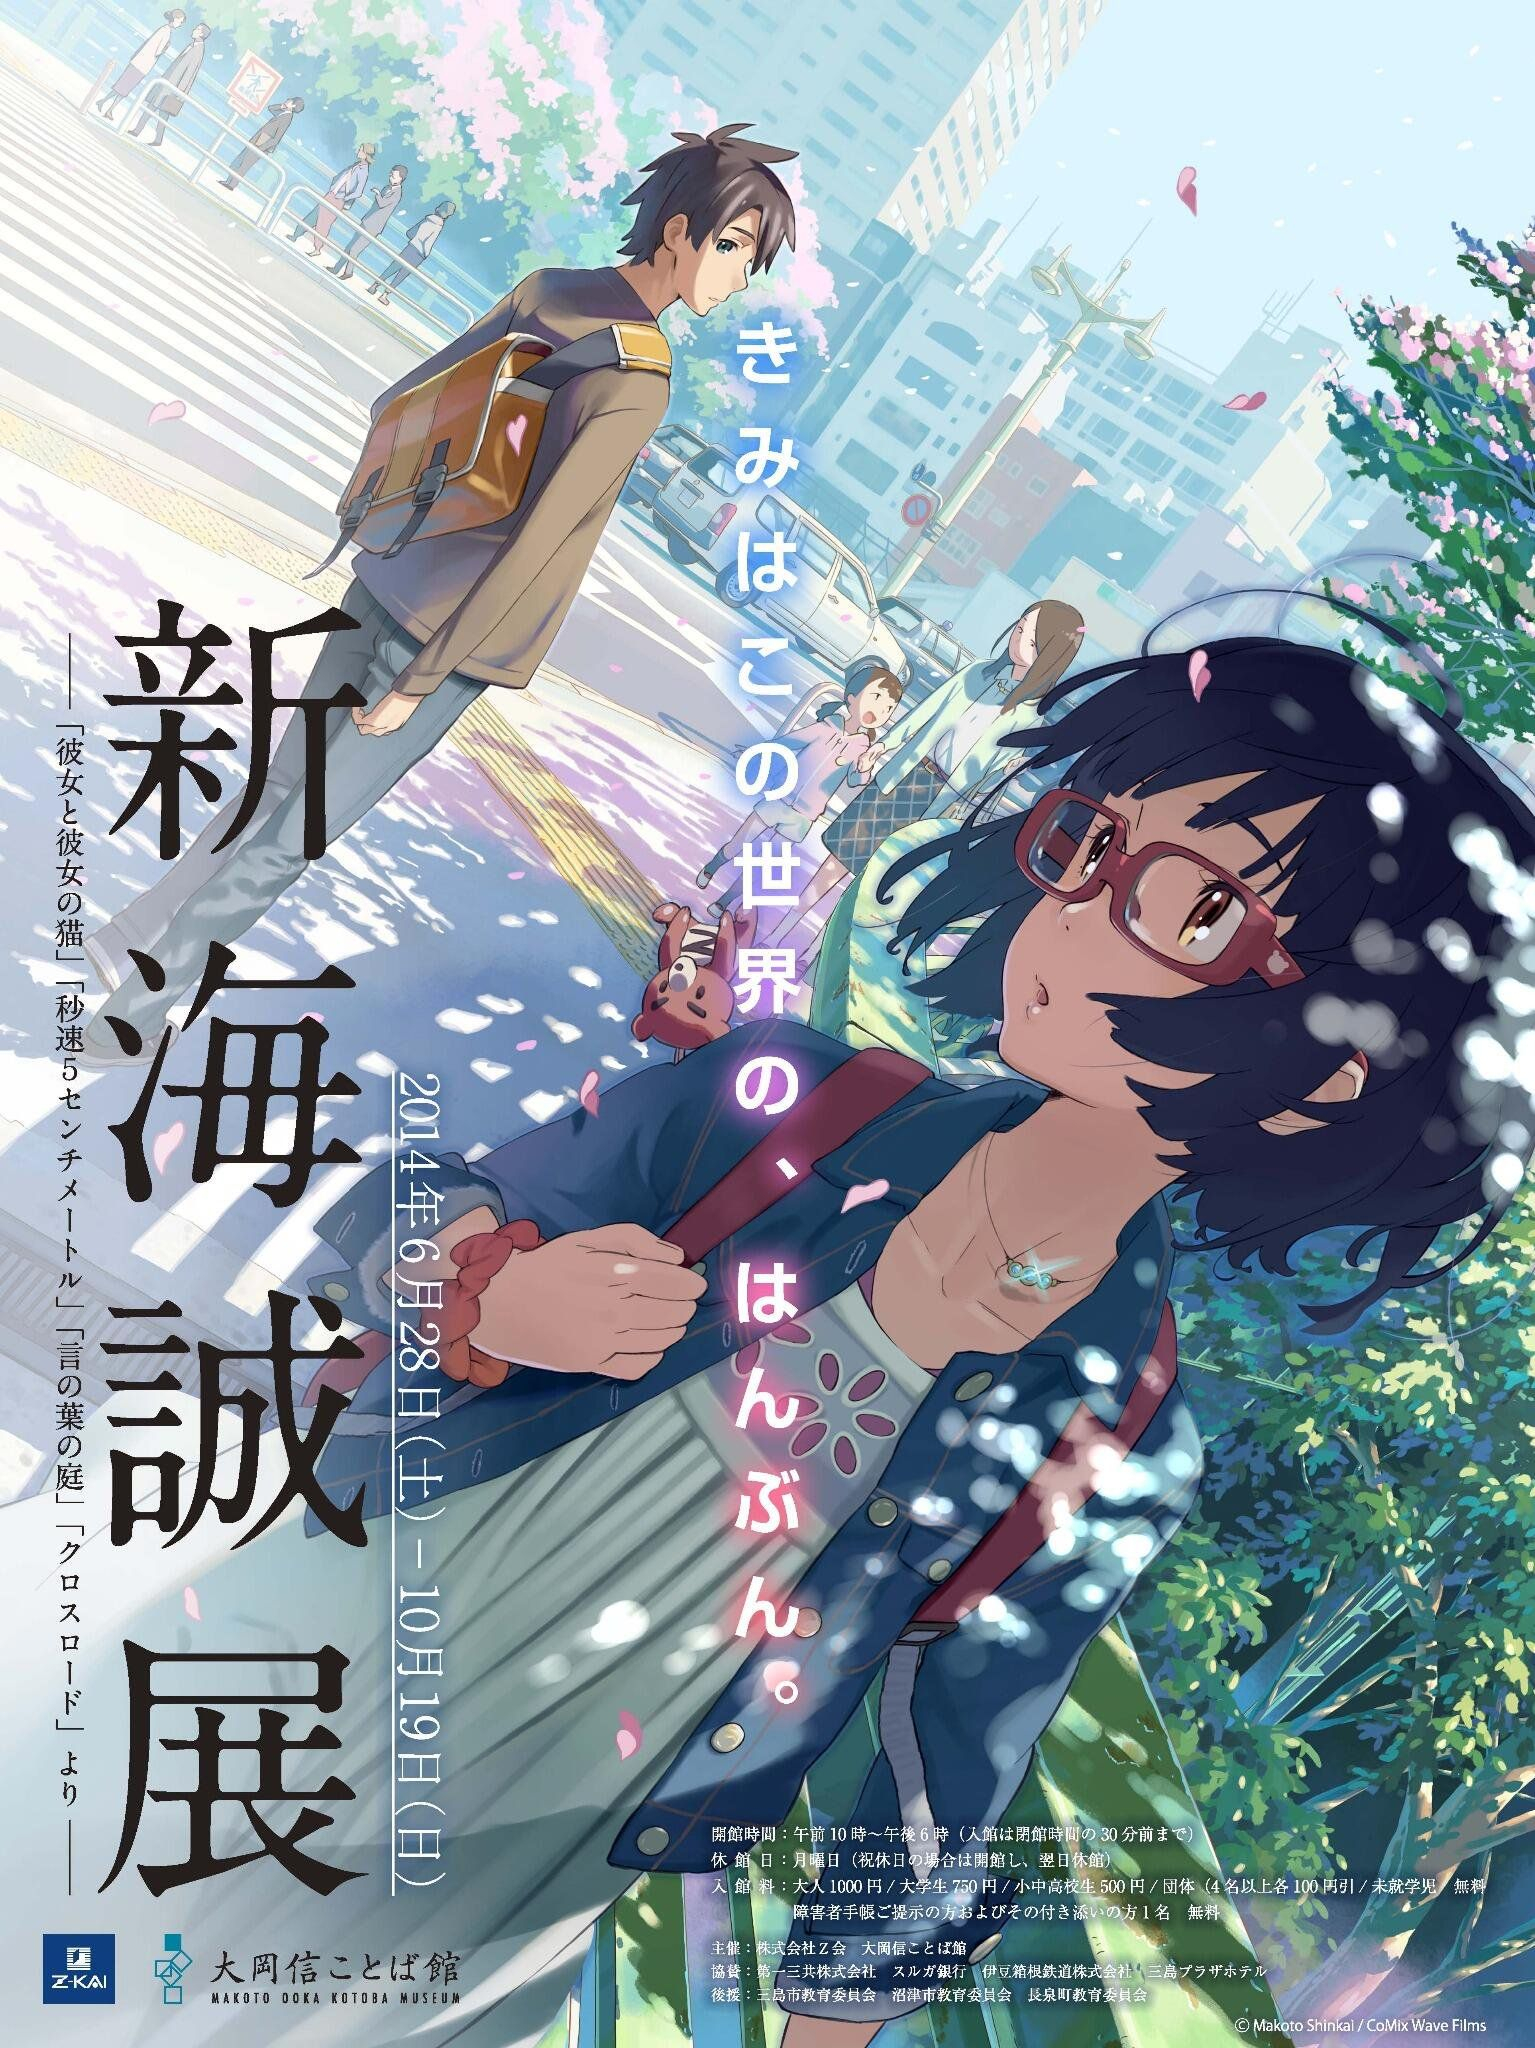 Your name anime tv commercials ghibli anime characters animation character art